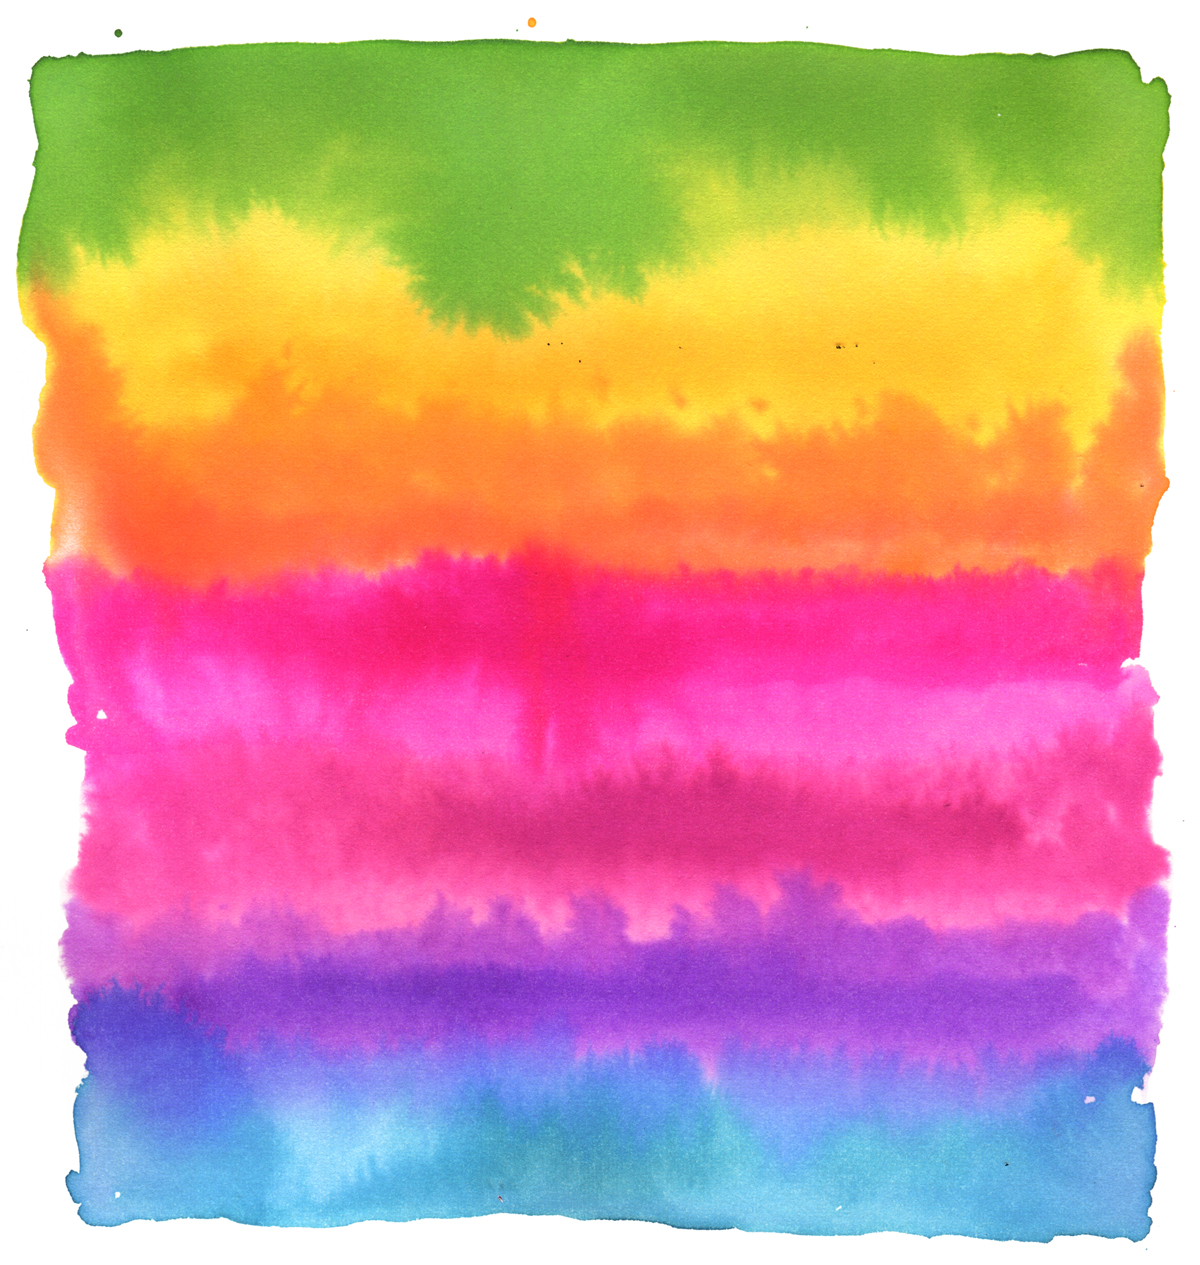 Painted with Dr. Ph. Martin's Radiant Concentrated Watercolors. Highlyrecommended